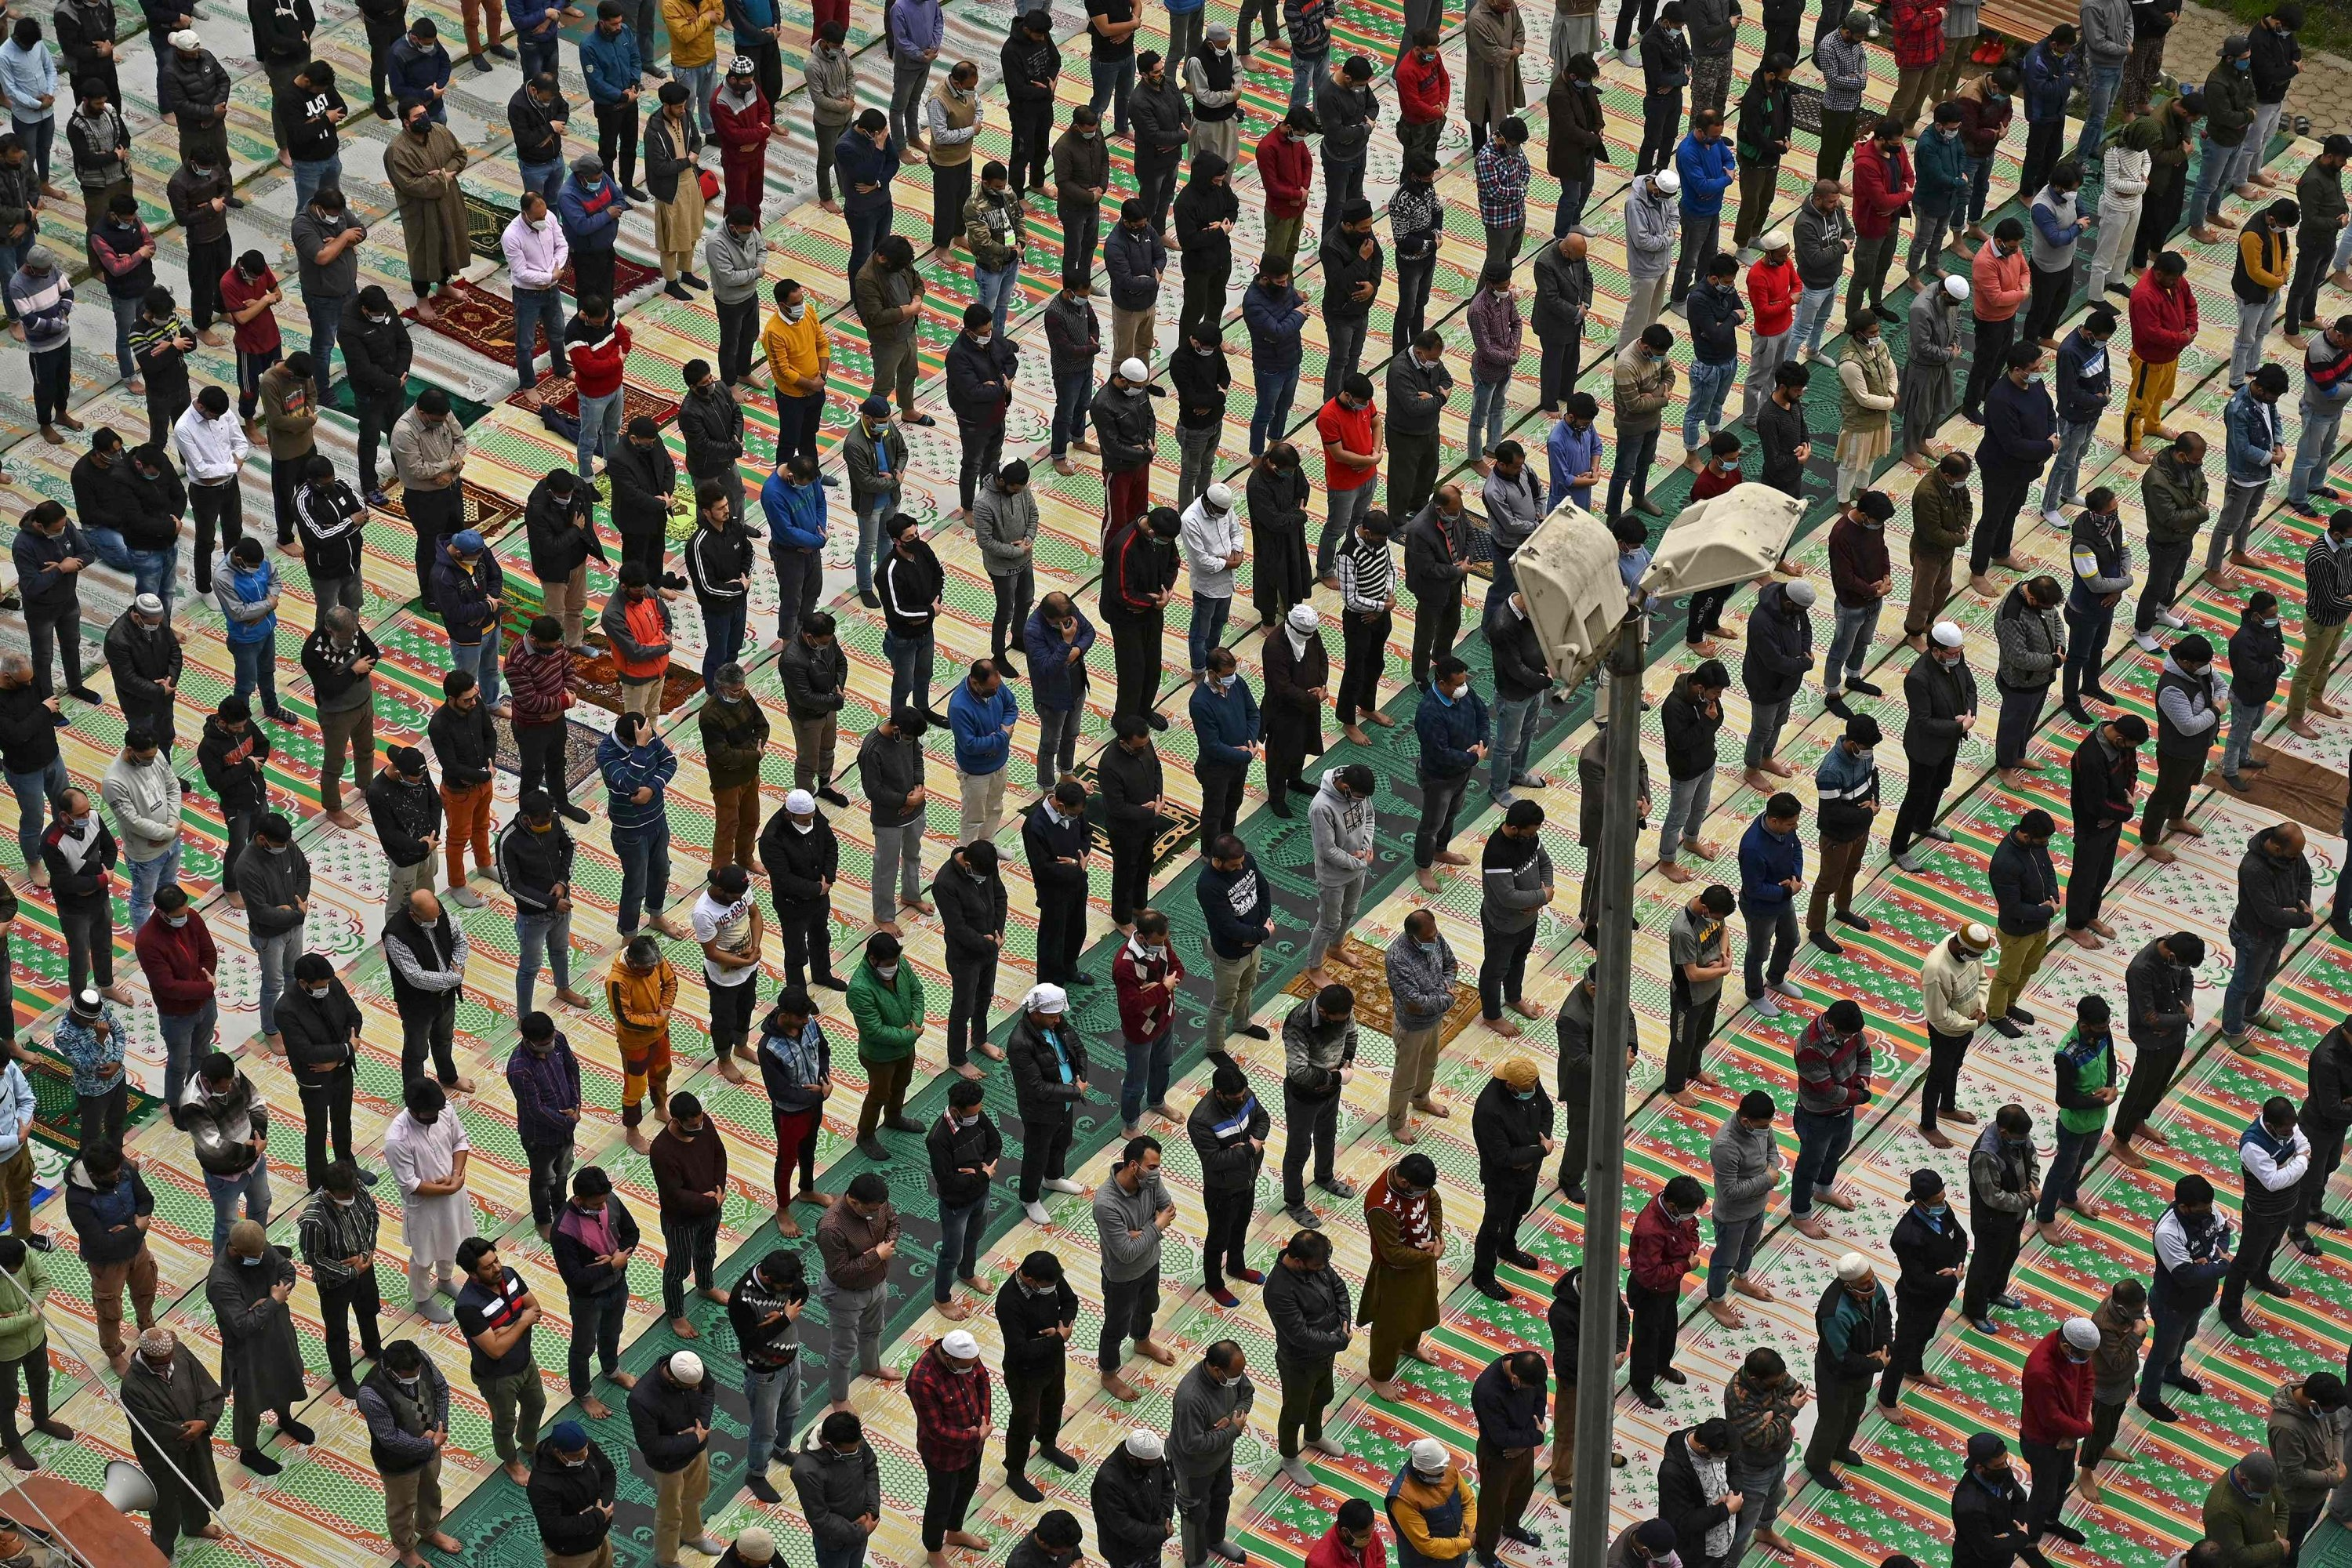 Muslim devotees gather at a mosque while maintaining social distancing protocols to offer their prayers on the first day of the holy month of Ramadan in Srinagar, Kashmir, April 14, 2021. (AFP Photo)